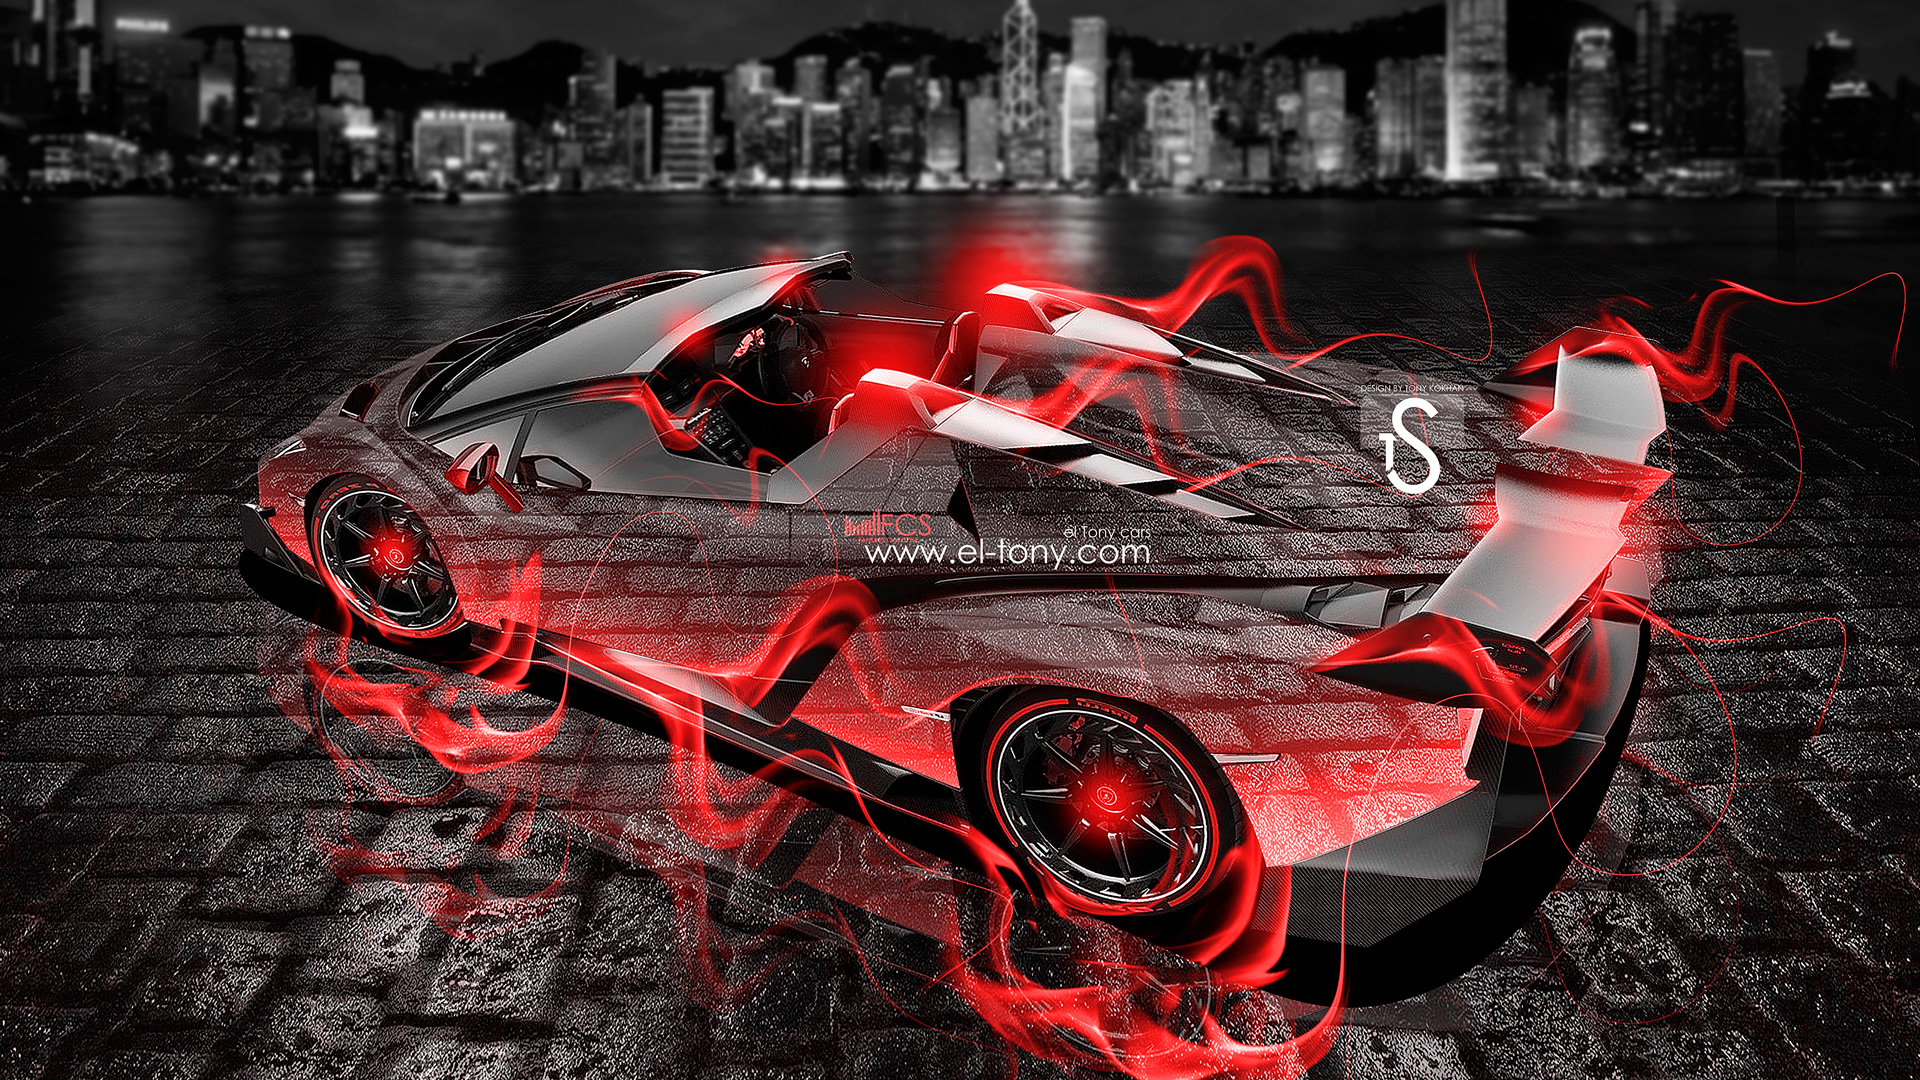 Hot 3d camaro coloring cars pictures photos images - Lamborghini Veneno Roadster Fire City Car 2013 El Tony